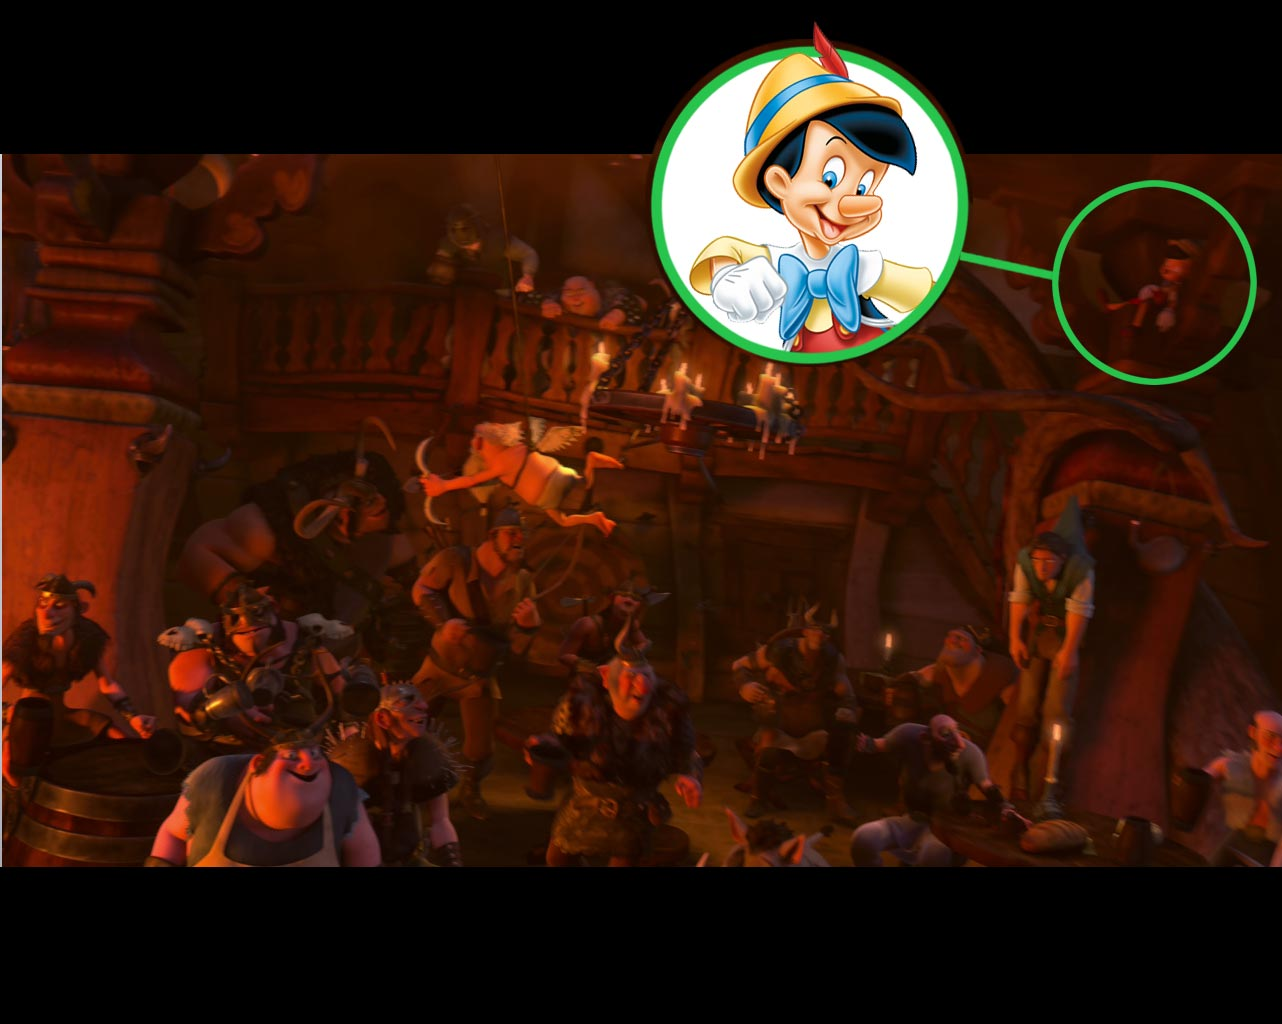 disney hidden things in disney movies on pinterest